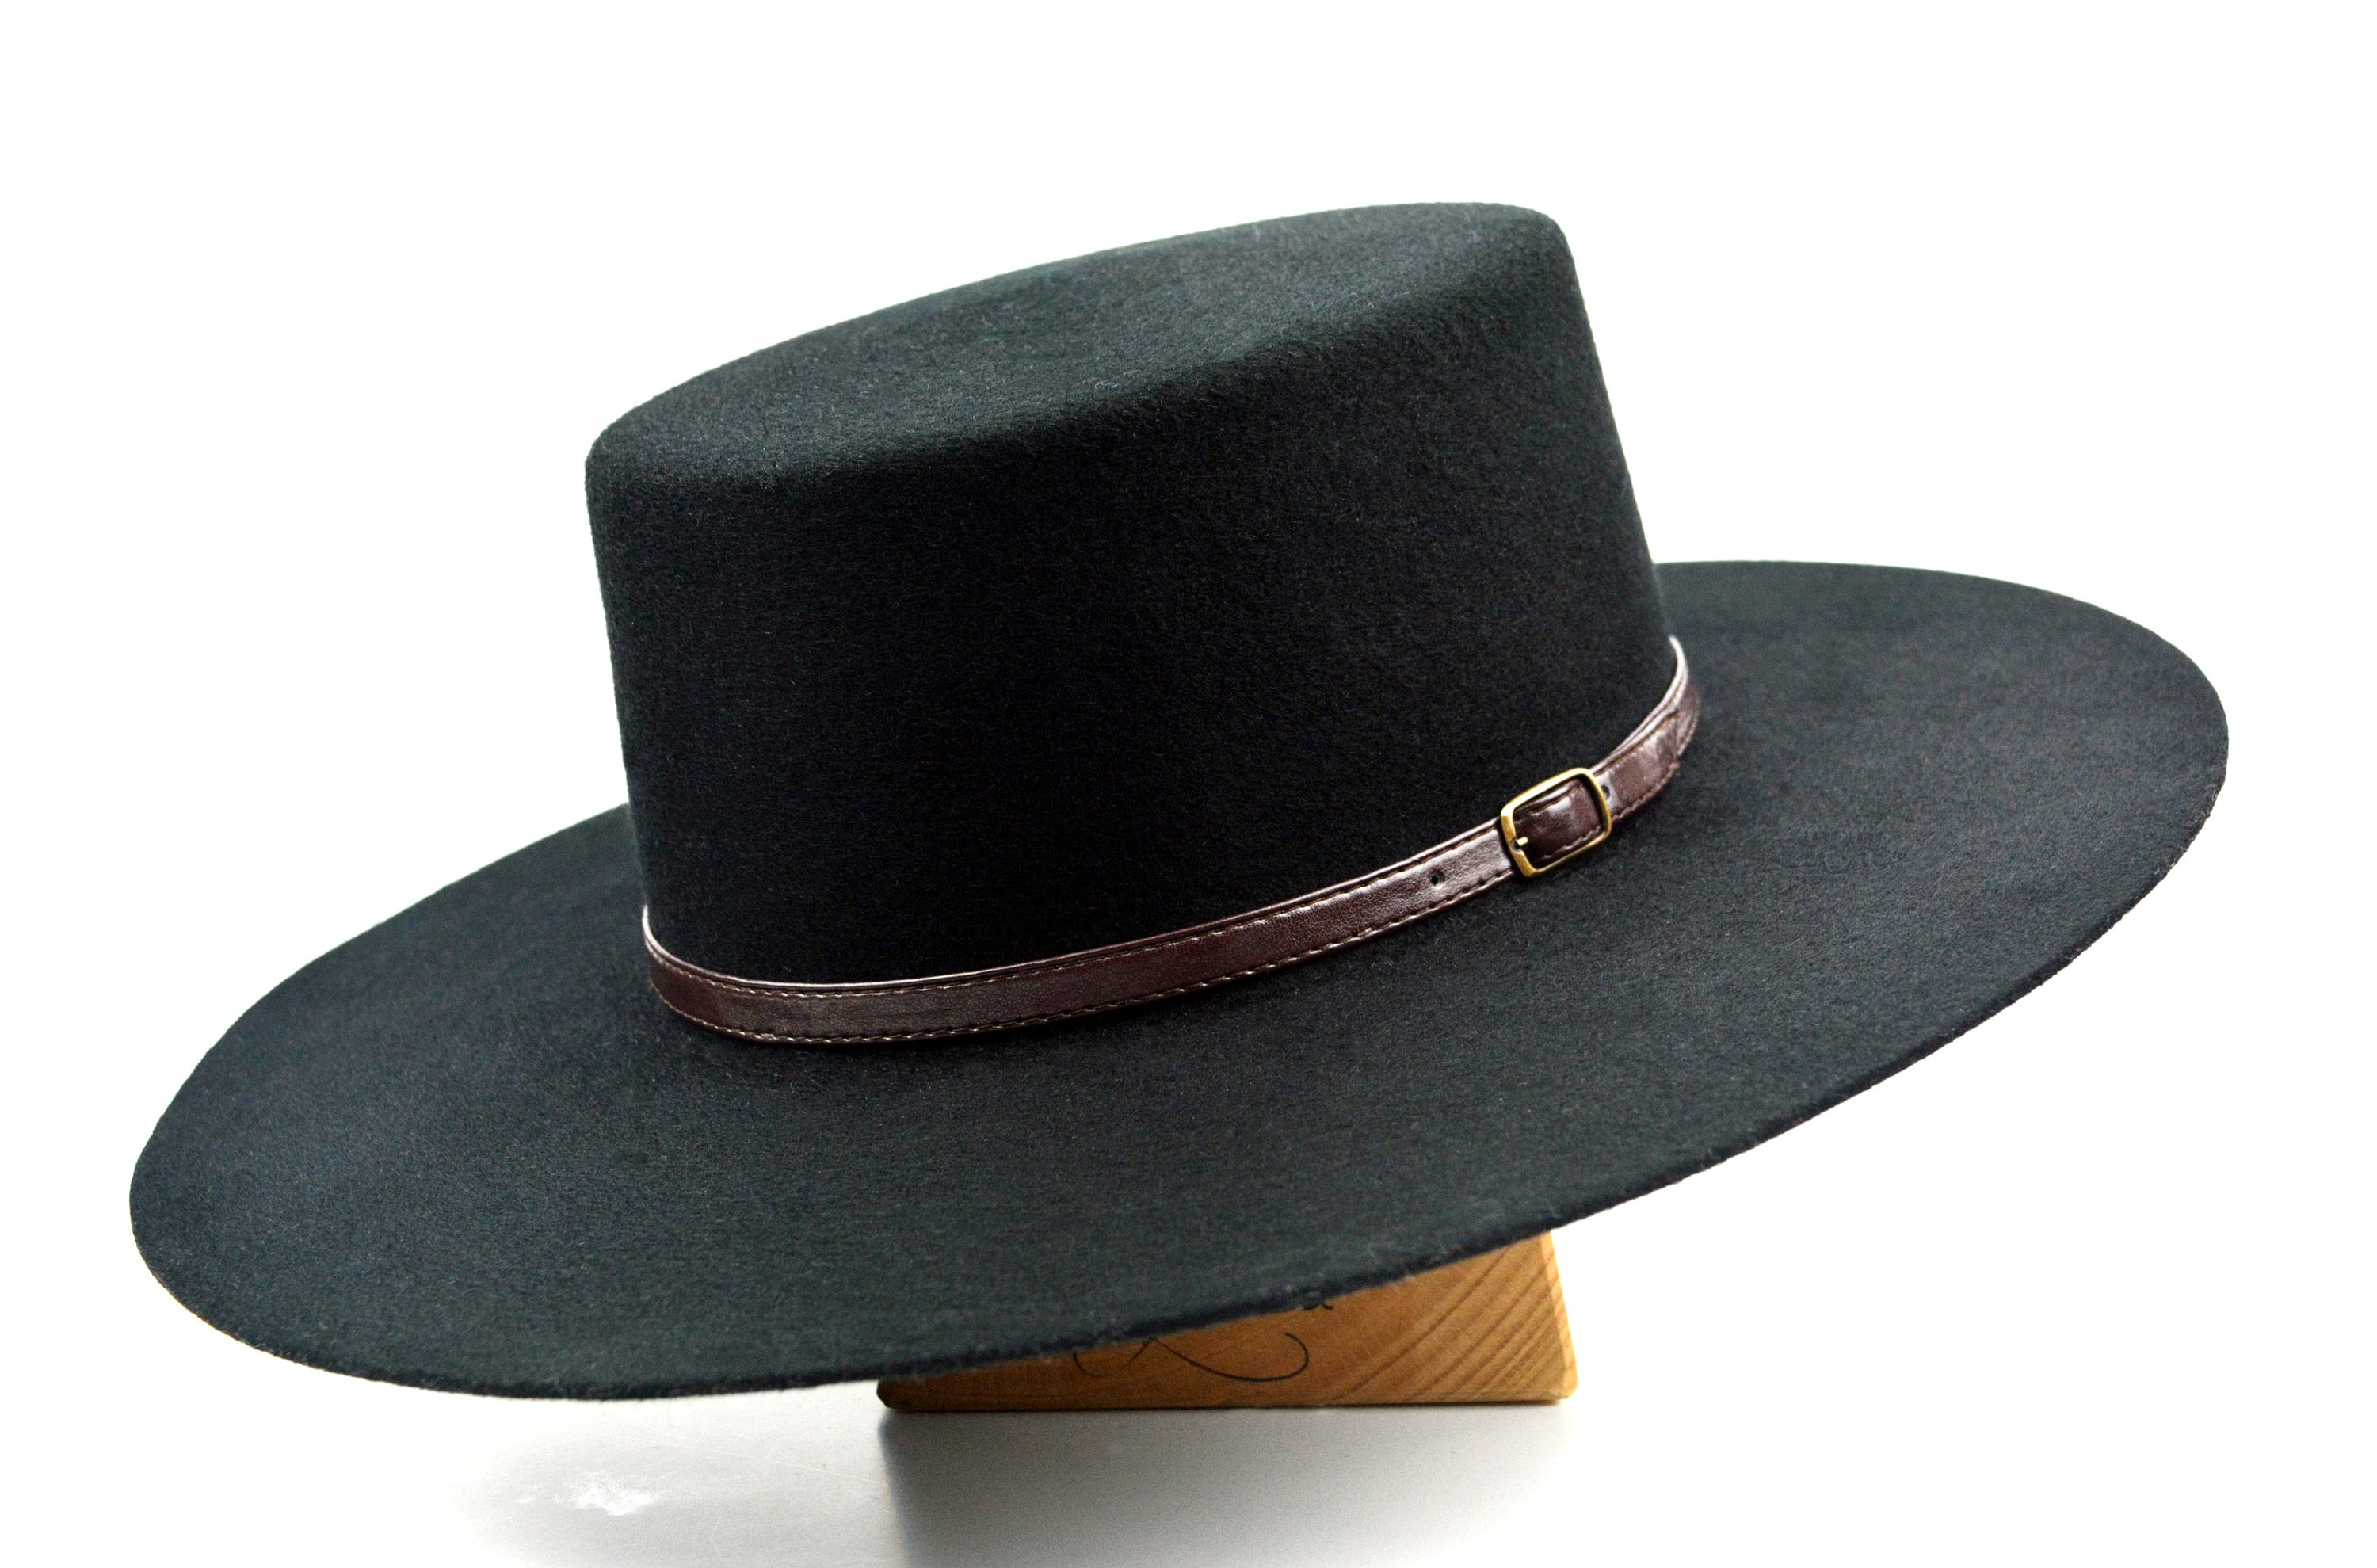 b1a85a0d4 Bolero Hat | The GALLOPER | Black Wool Felt Flat Crown Wide Brim Hat Men  Women | Western hats